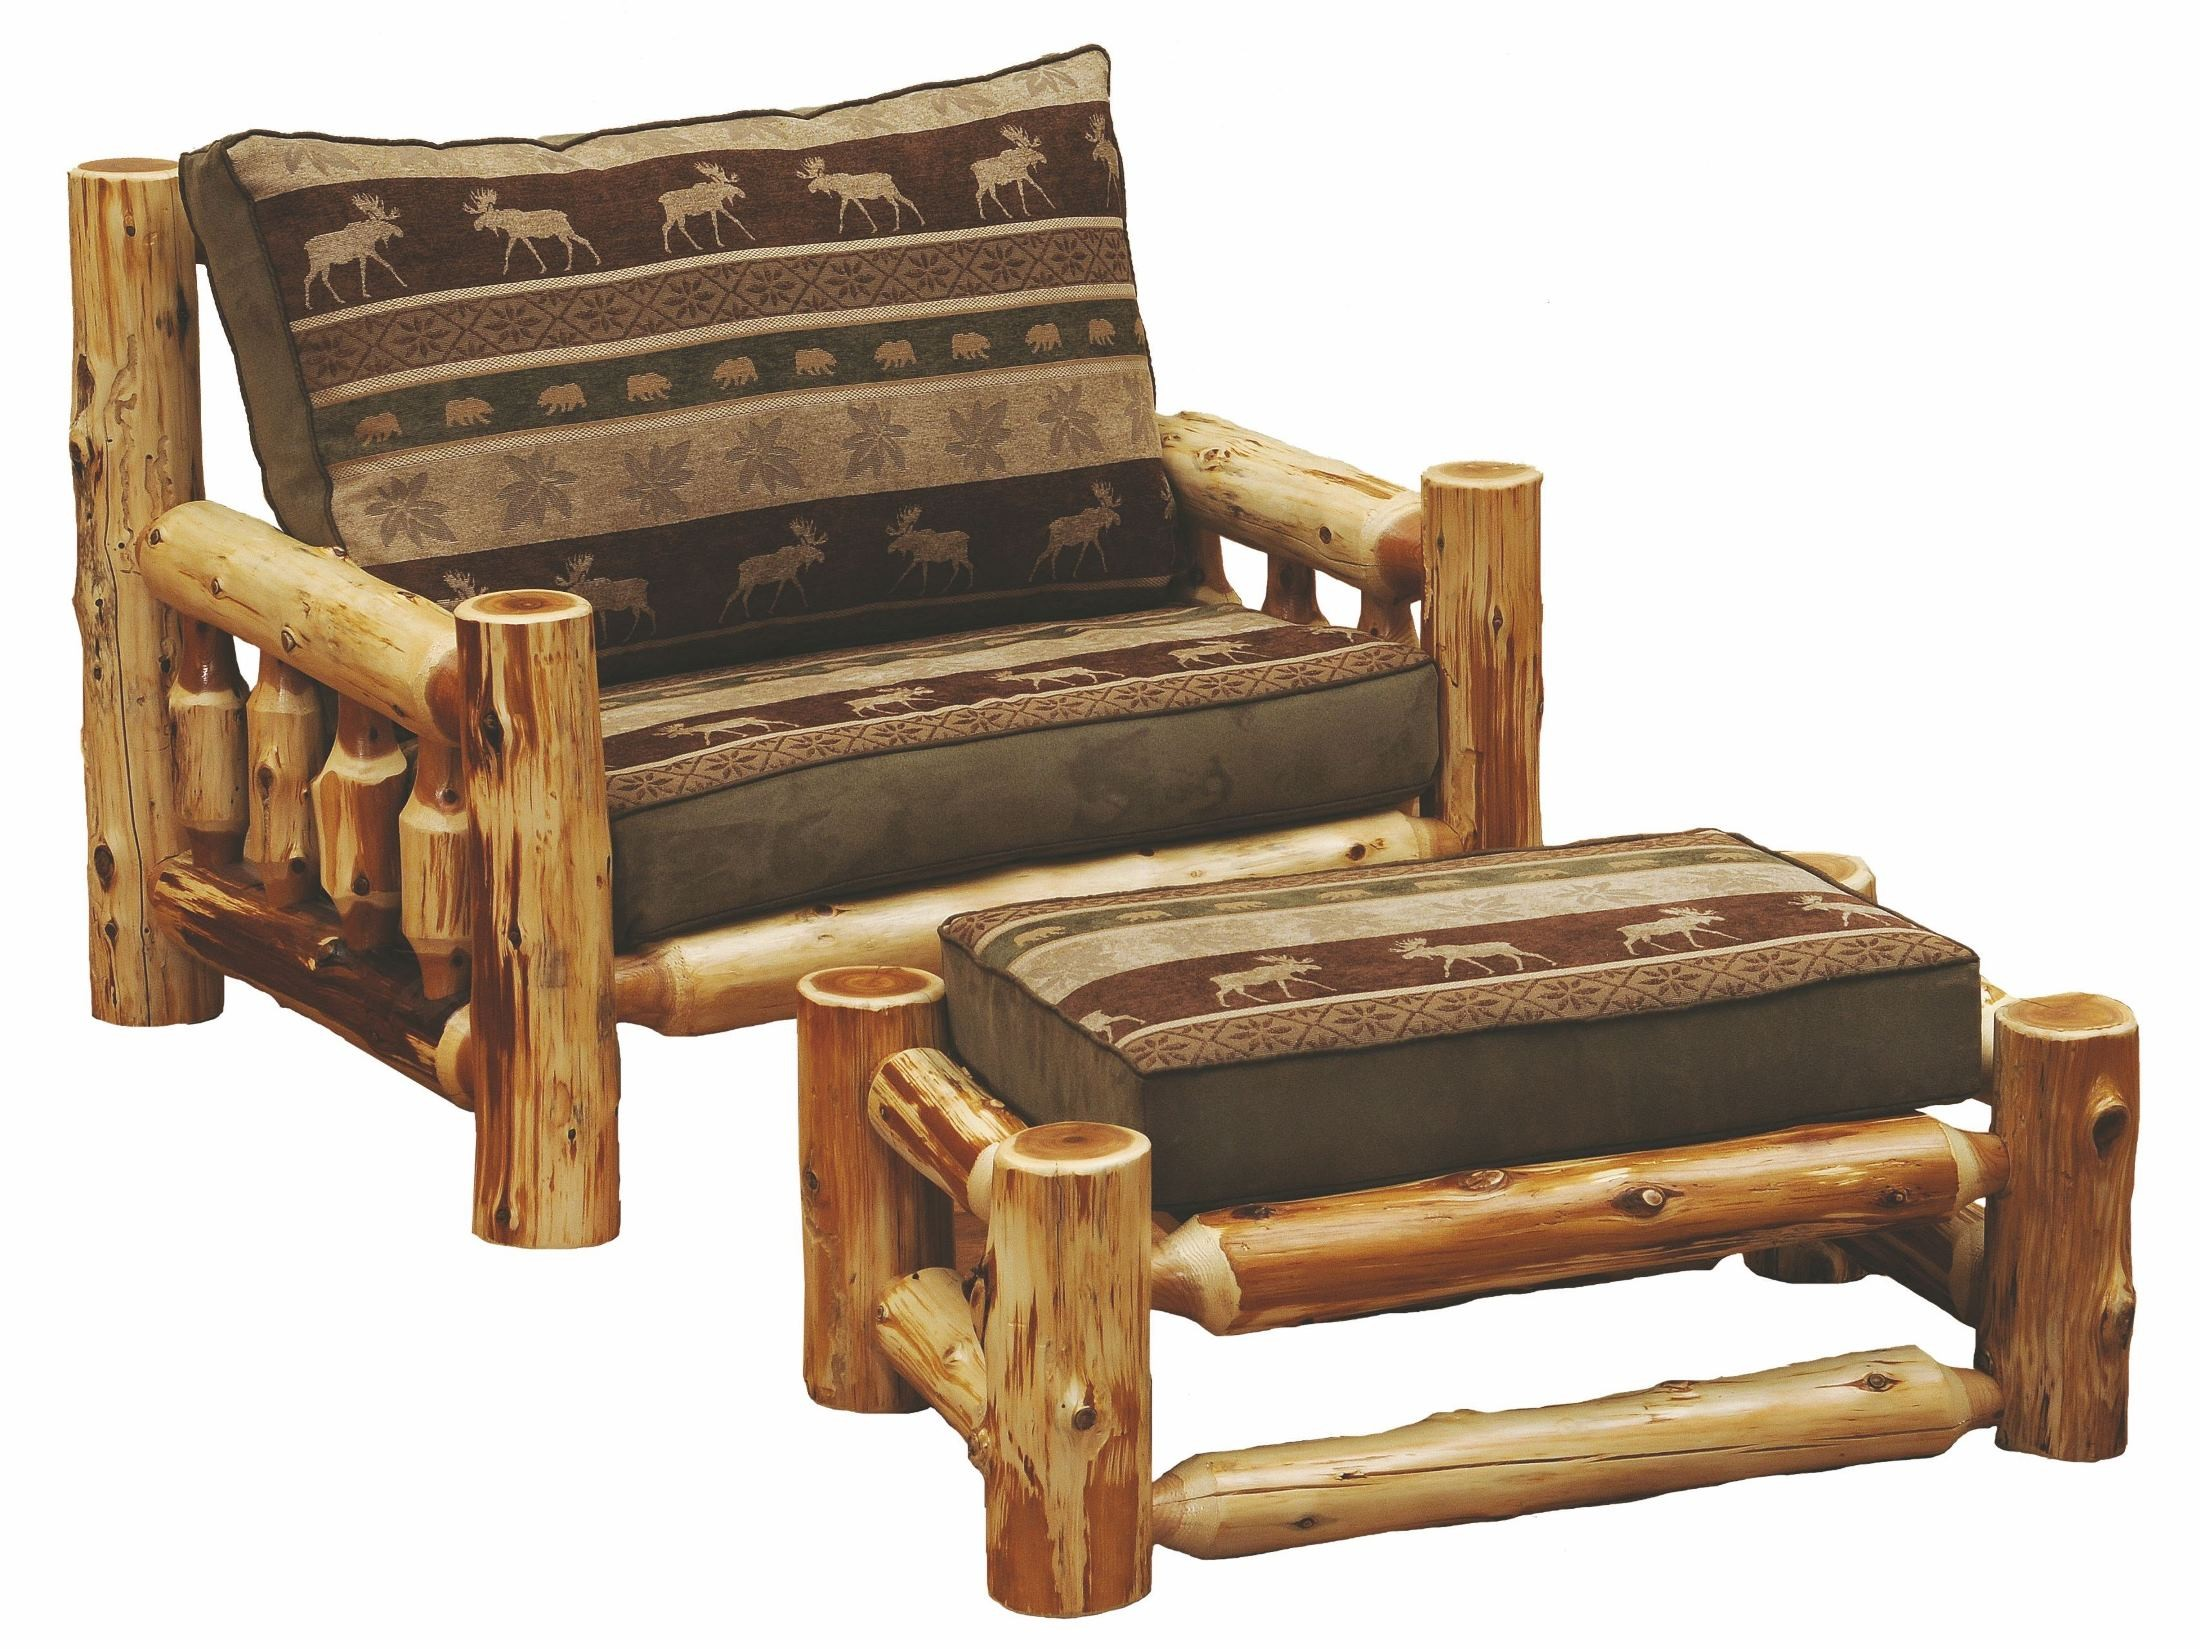 one and a half chair motorized wheel chairs cedar log frame from fireside lodge